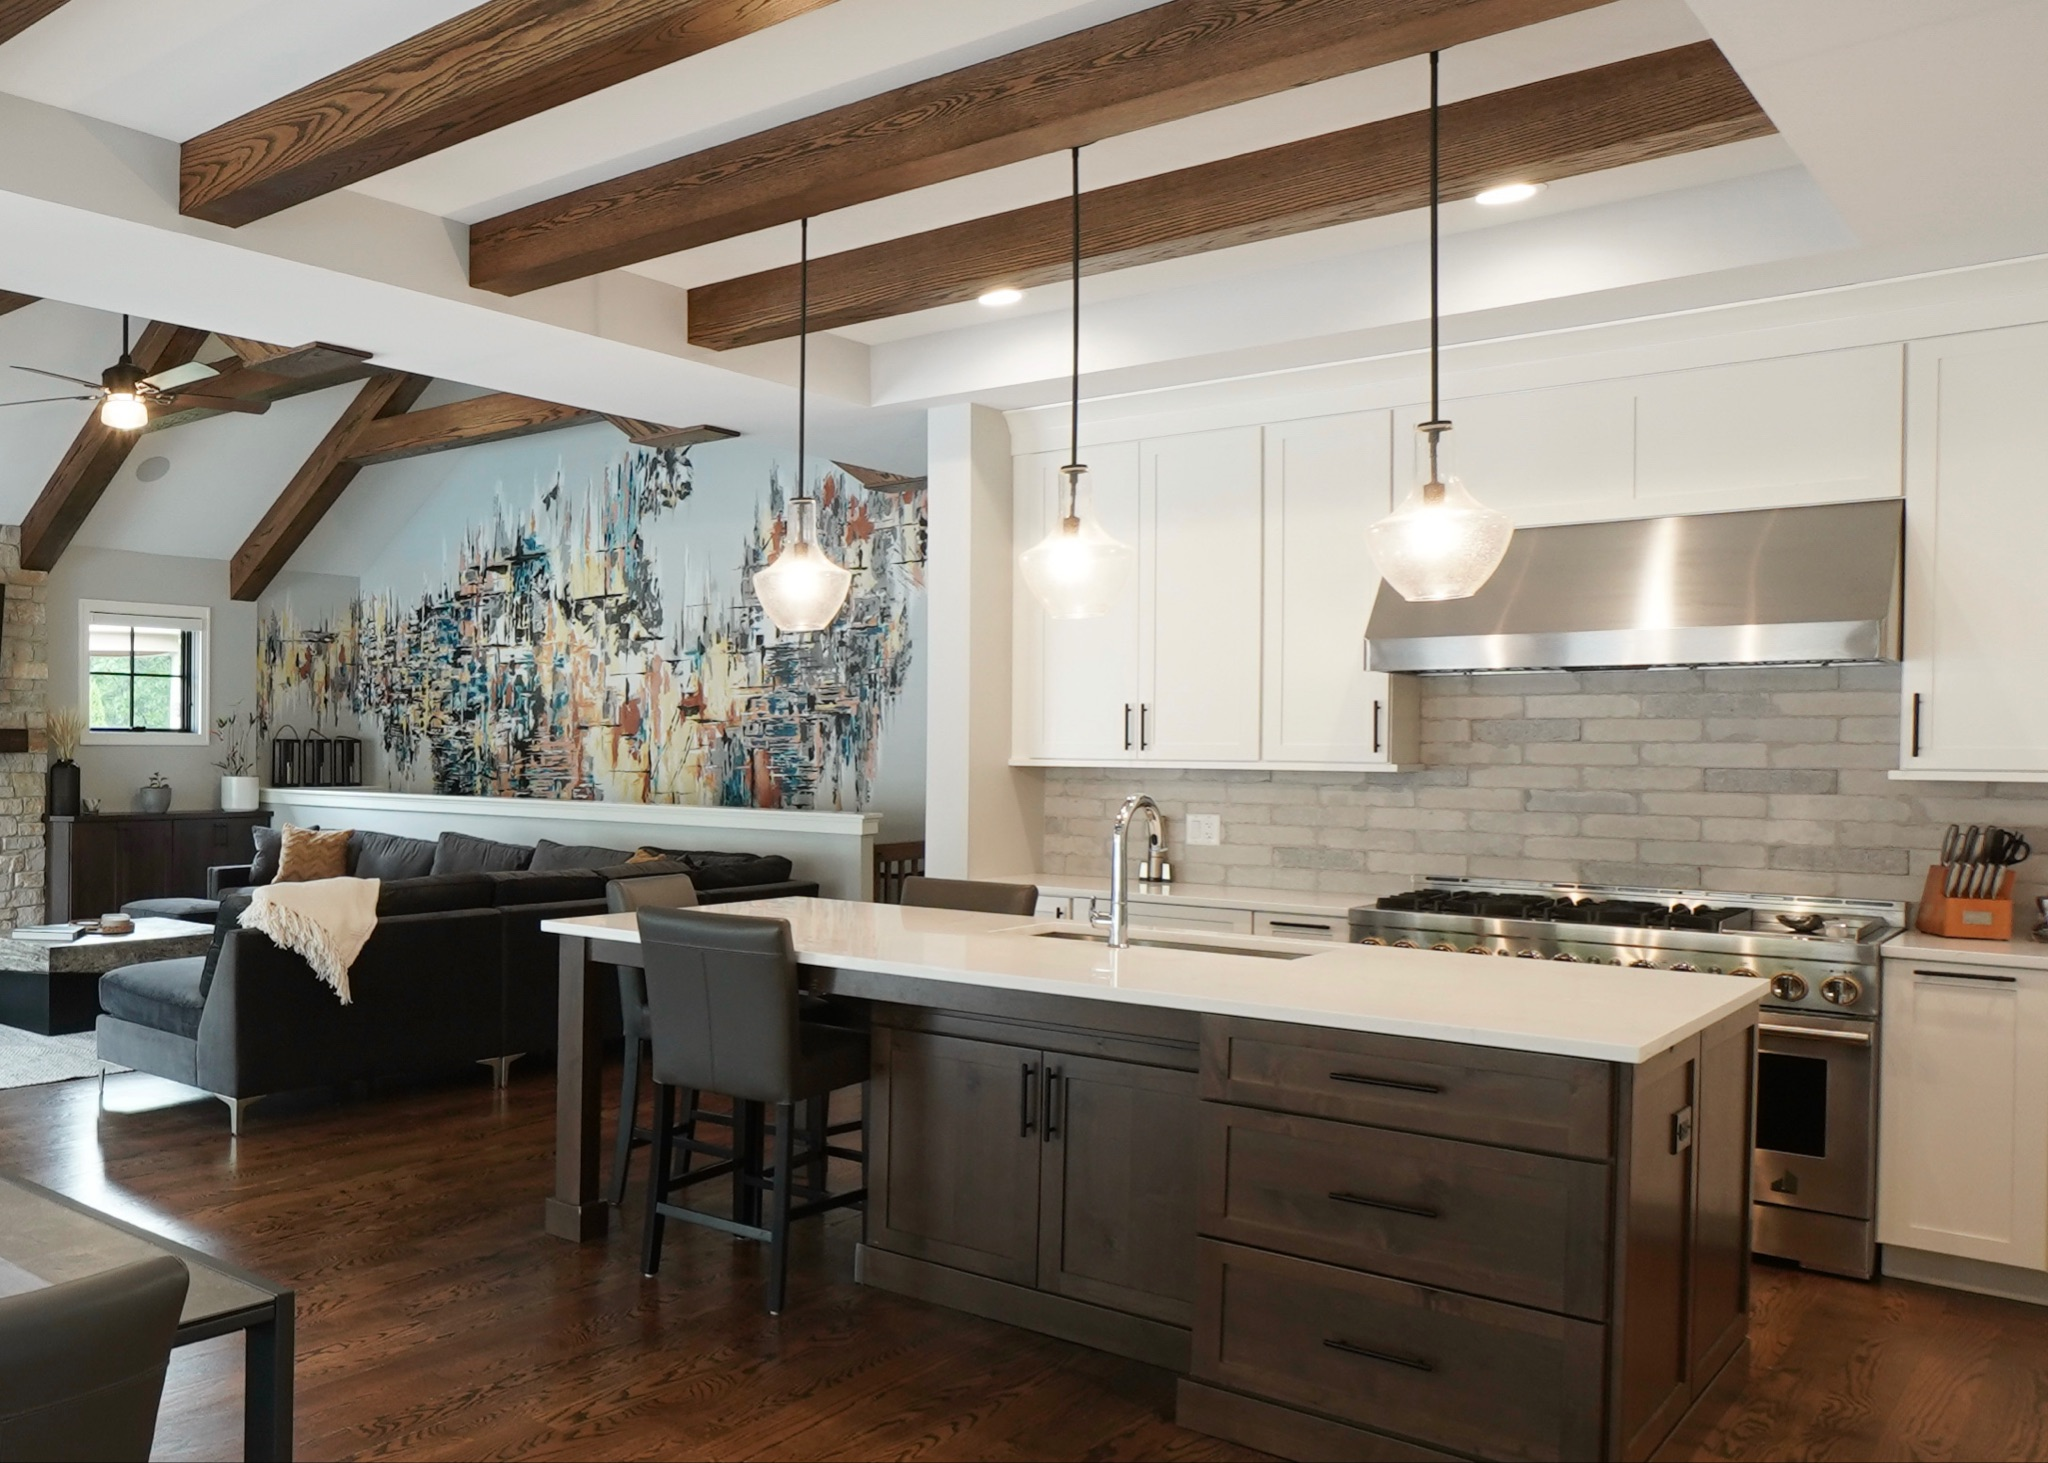 Open floor plan kitchen with a large island, natural wood beamed ceiling, featuring white and wood cabinetry, a brick backsplash and stainless steel appliances.